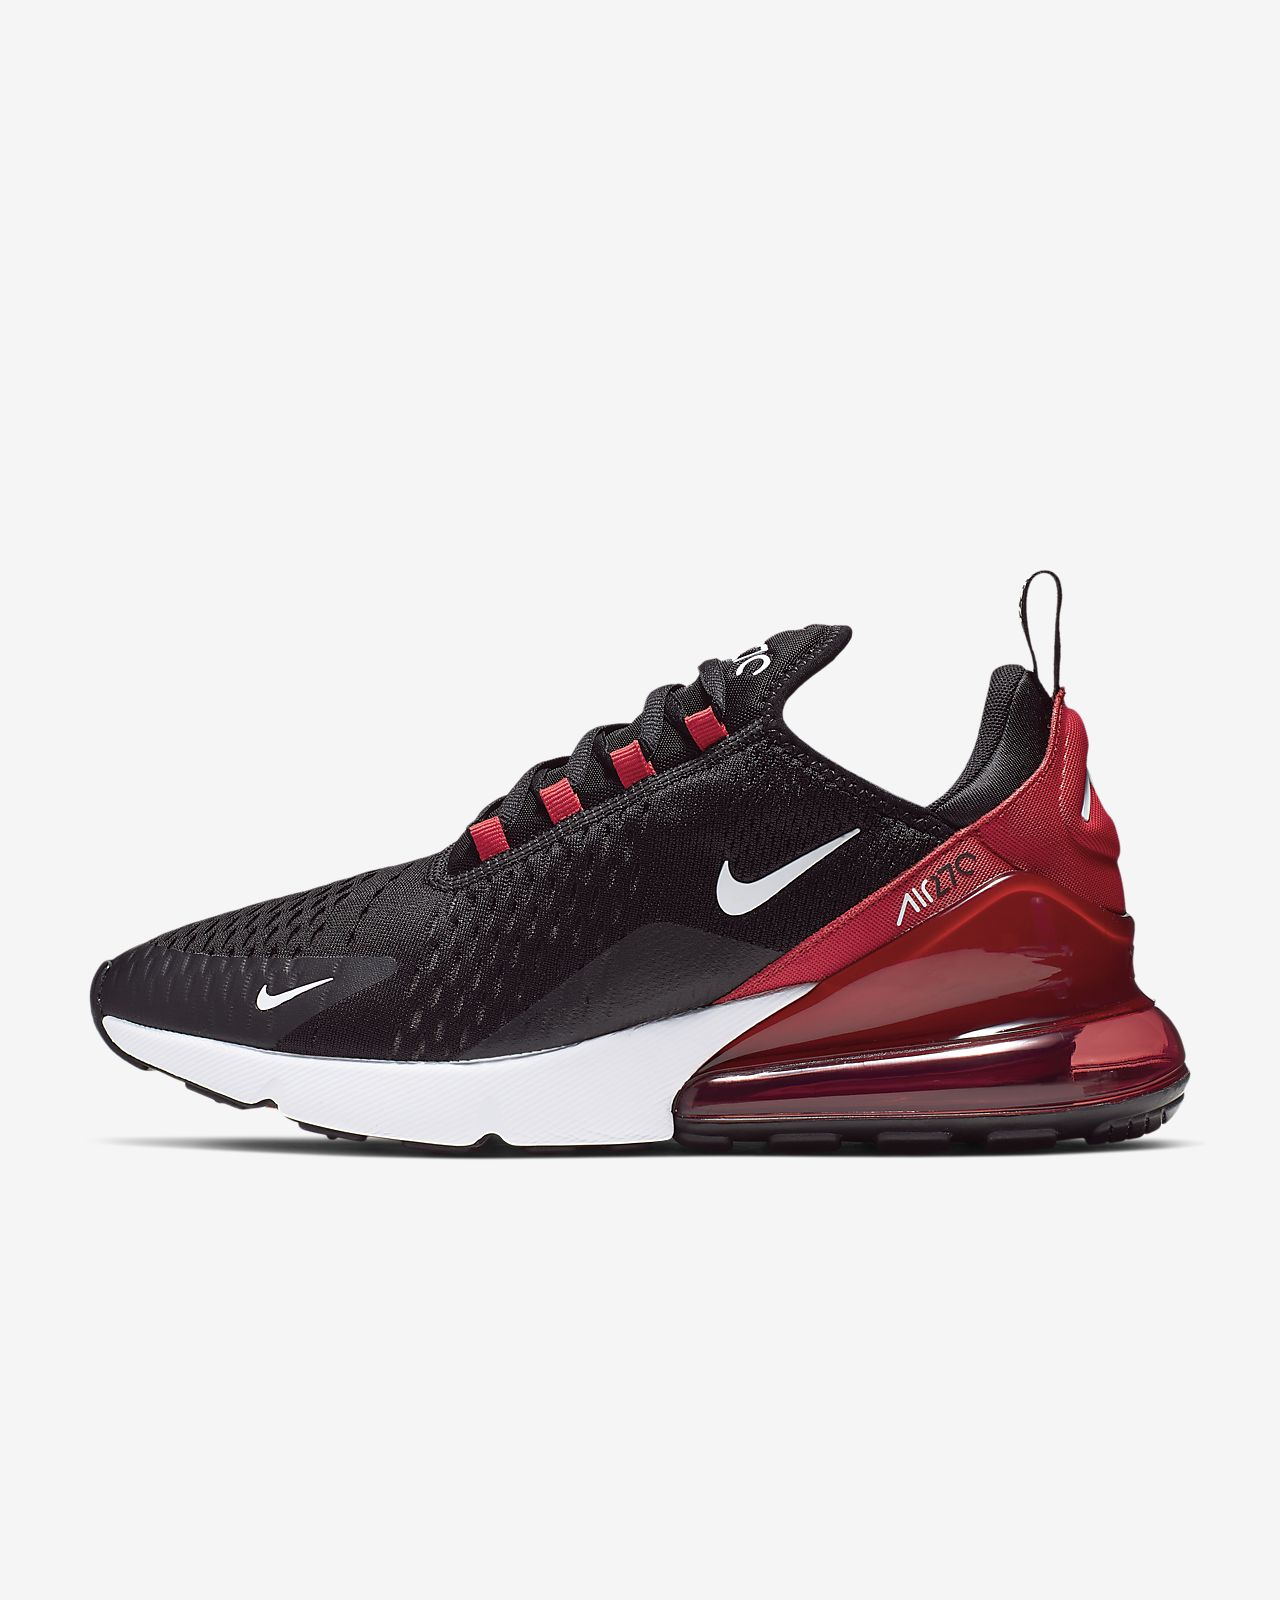 meet 27c34 cfbf6 Men s Shoe. Nike Air Max 270